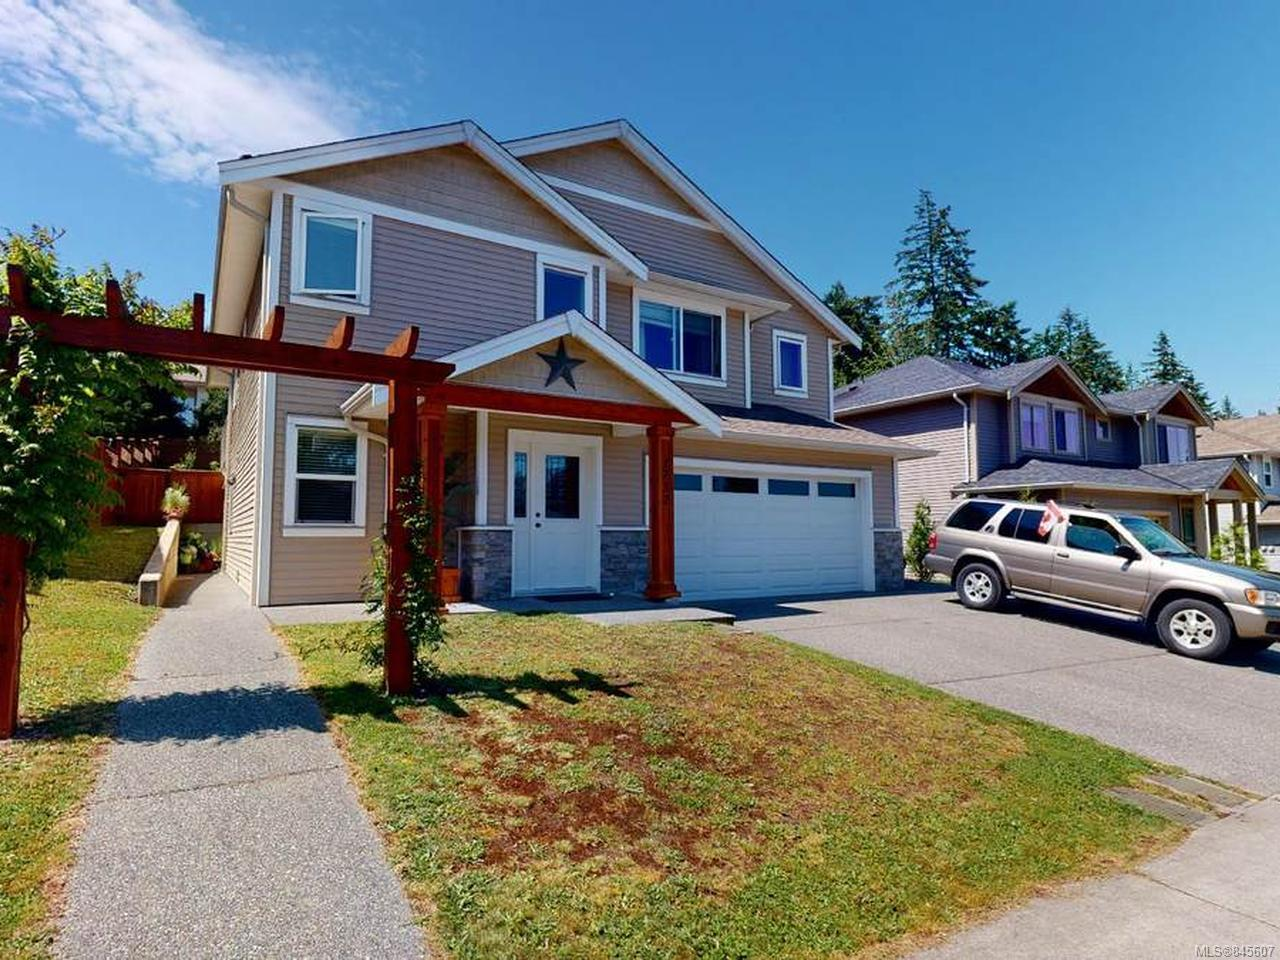 FEATURED LISTING: 1732 Trevors Rd NANAIMO